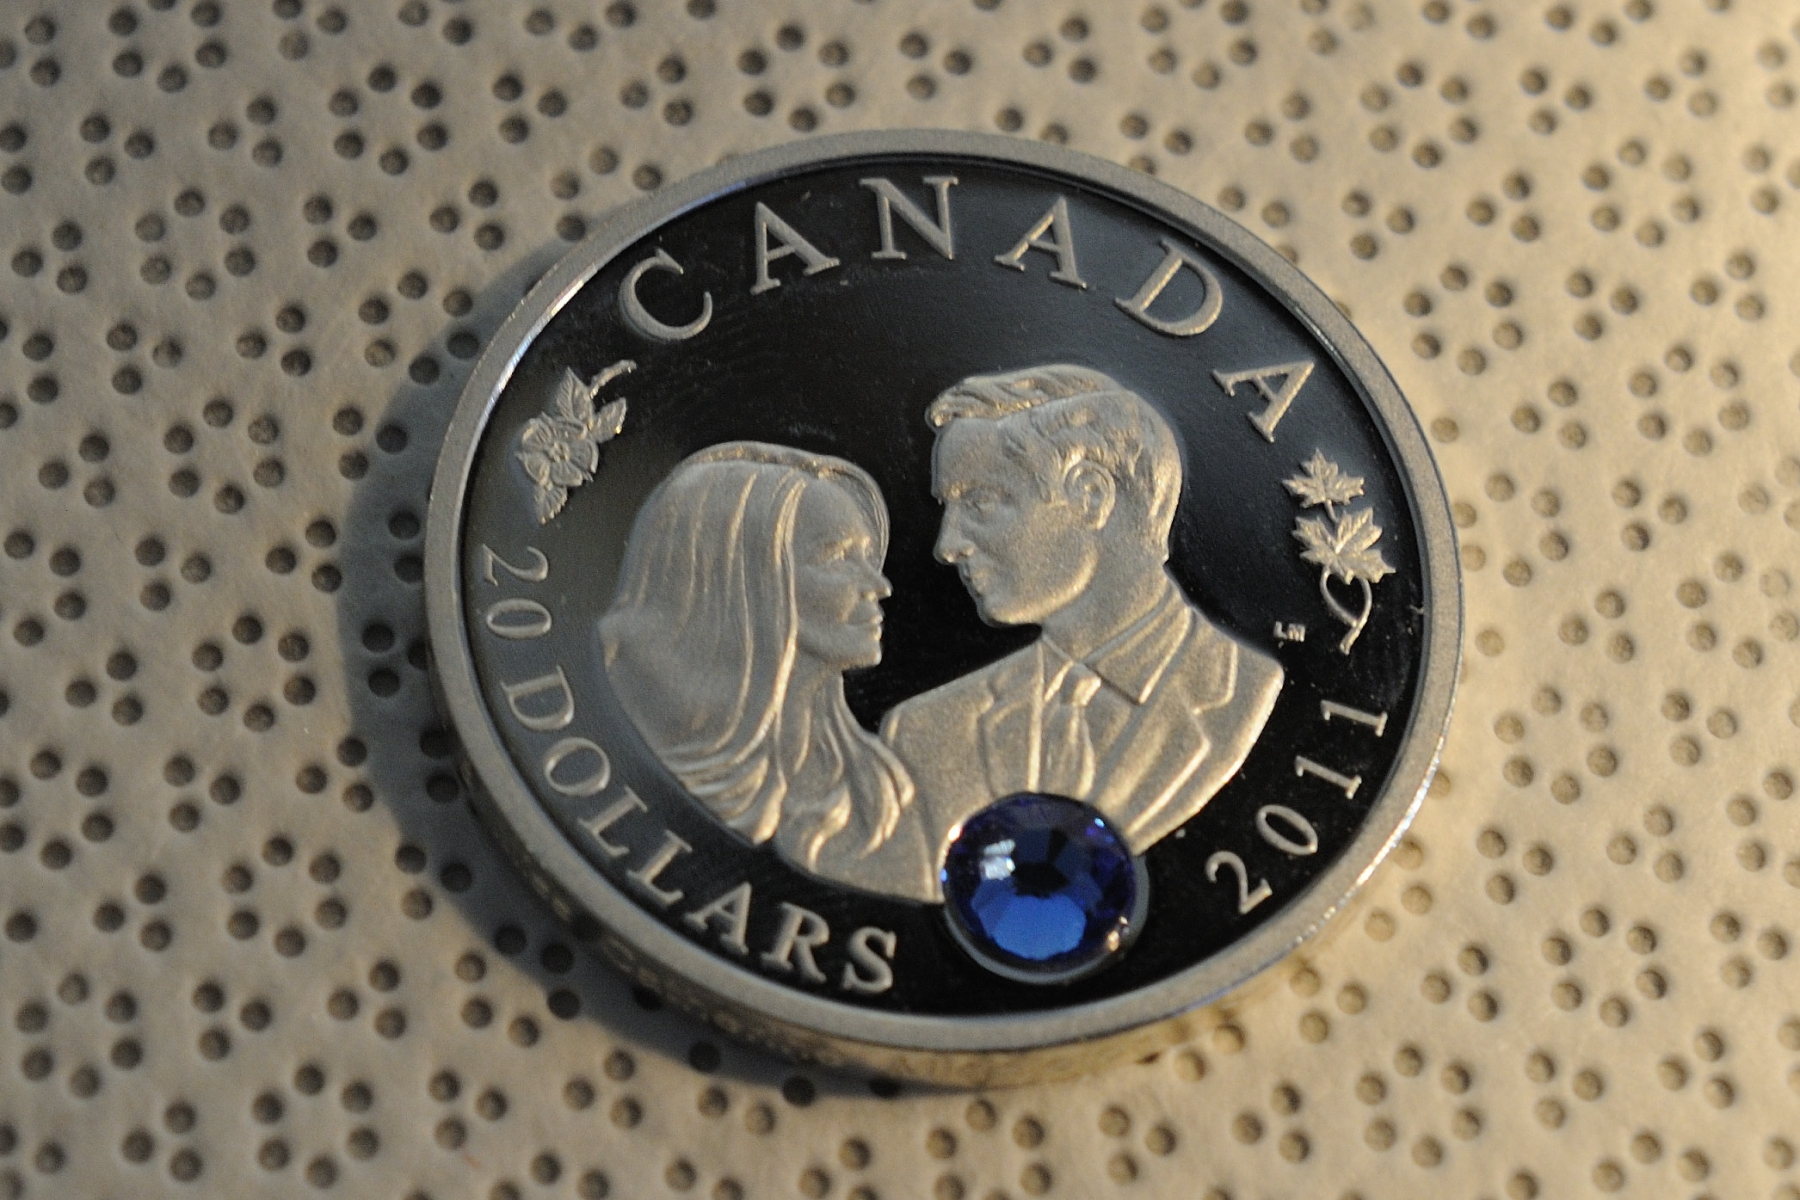 The design was created by accomplished Canadian artist and coin designer Laurie McGraw of Guelph, Ontario, and expertly engraved by Royal Canadian Mint Engraver Josie Osio.